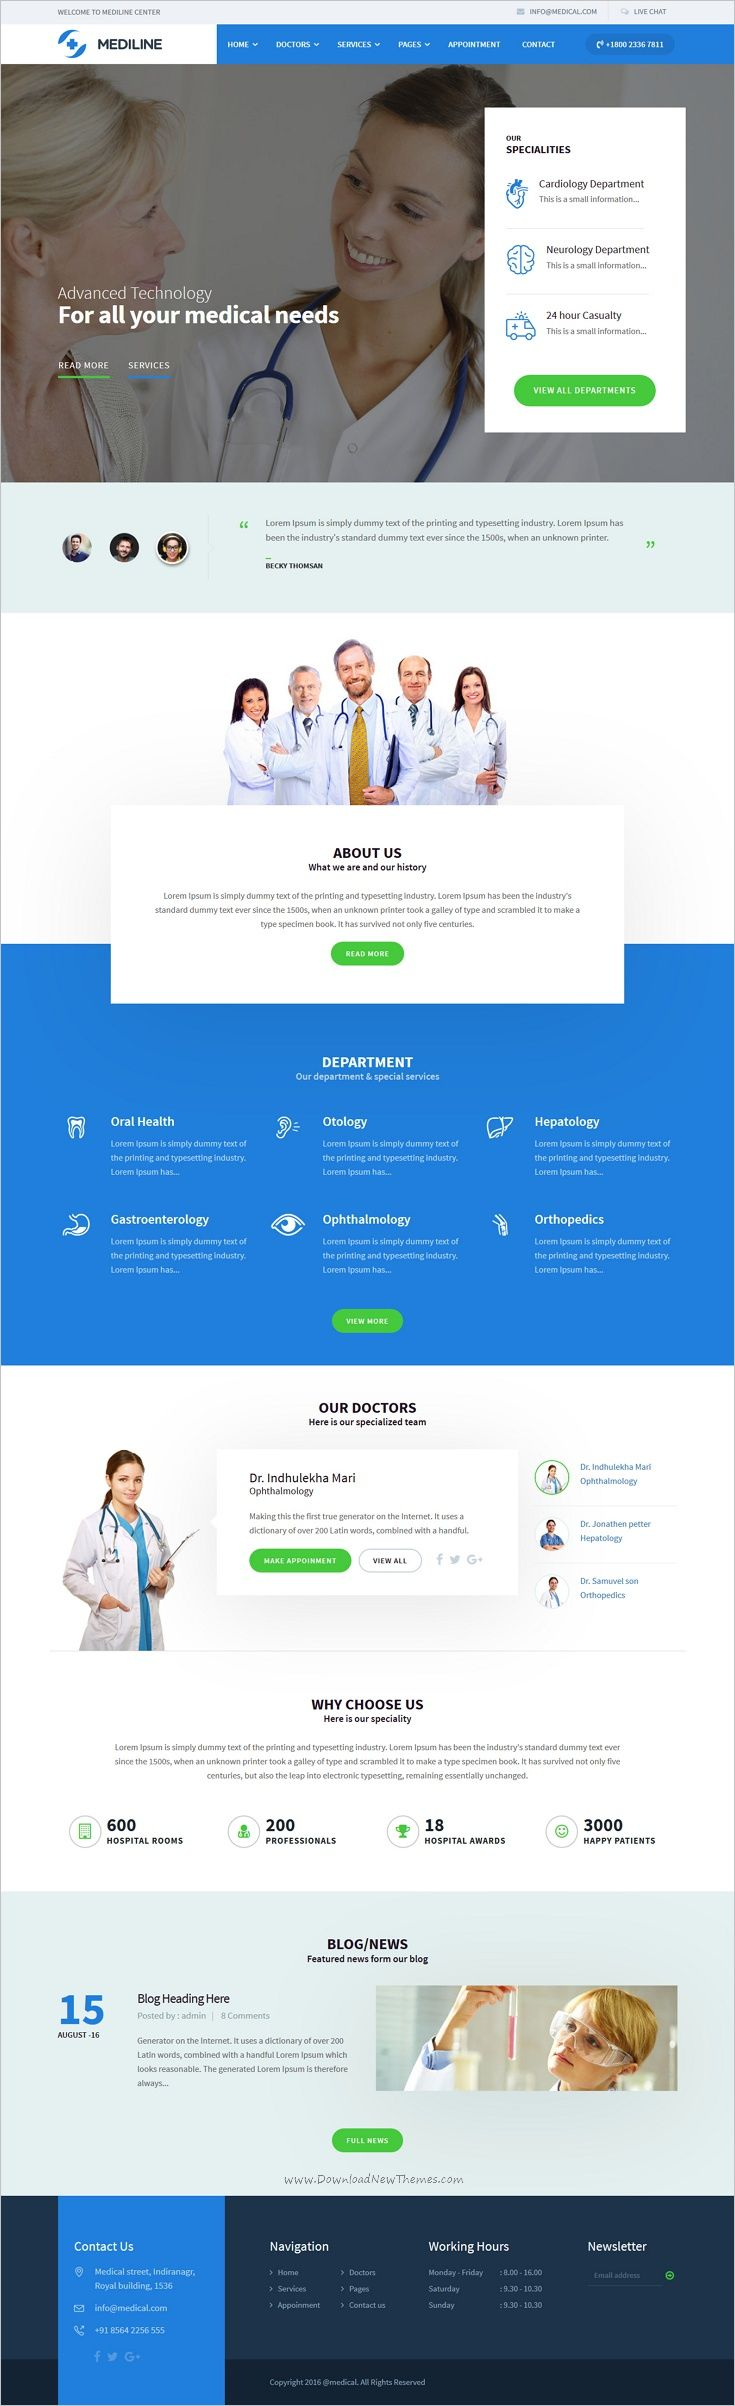 Buy mediline medical health html template by udayraj on themeforest mediline html template can be used for any type of medical websites